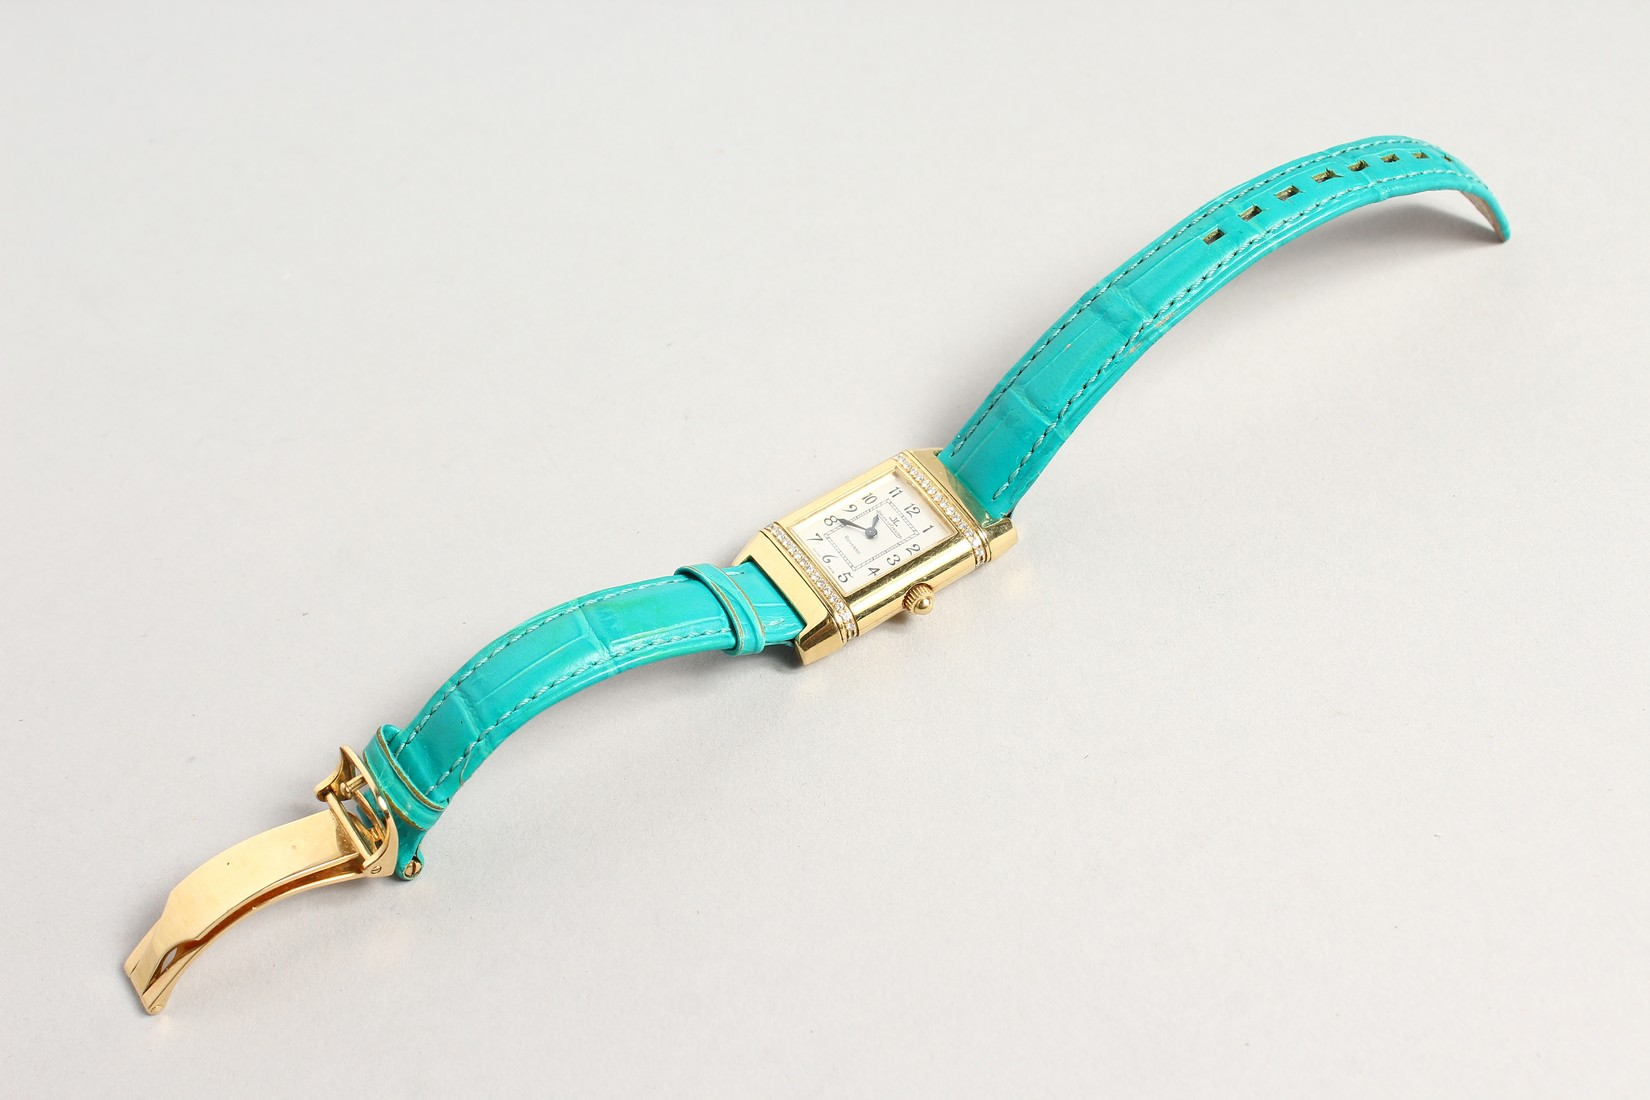 A VERY GOOD 18CT. GOLD AND DIAMOND JAGEUR LE COUTRE REVERSE WRISTWATCH, with a leather strap. - Image 2 of 8